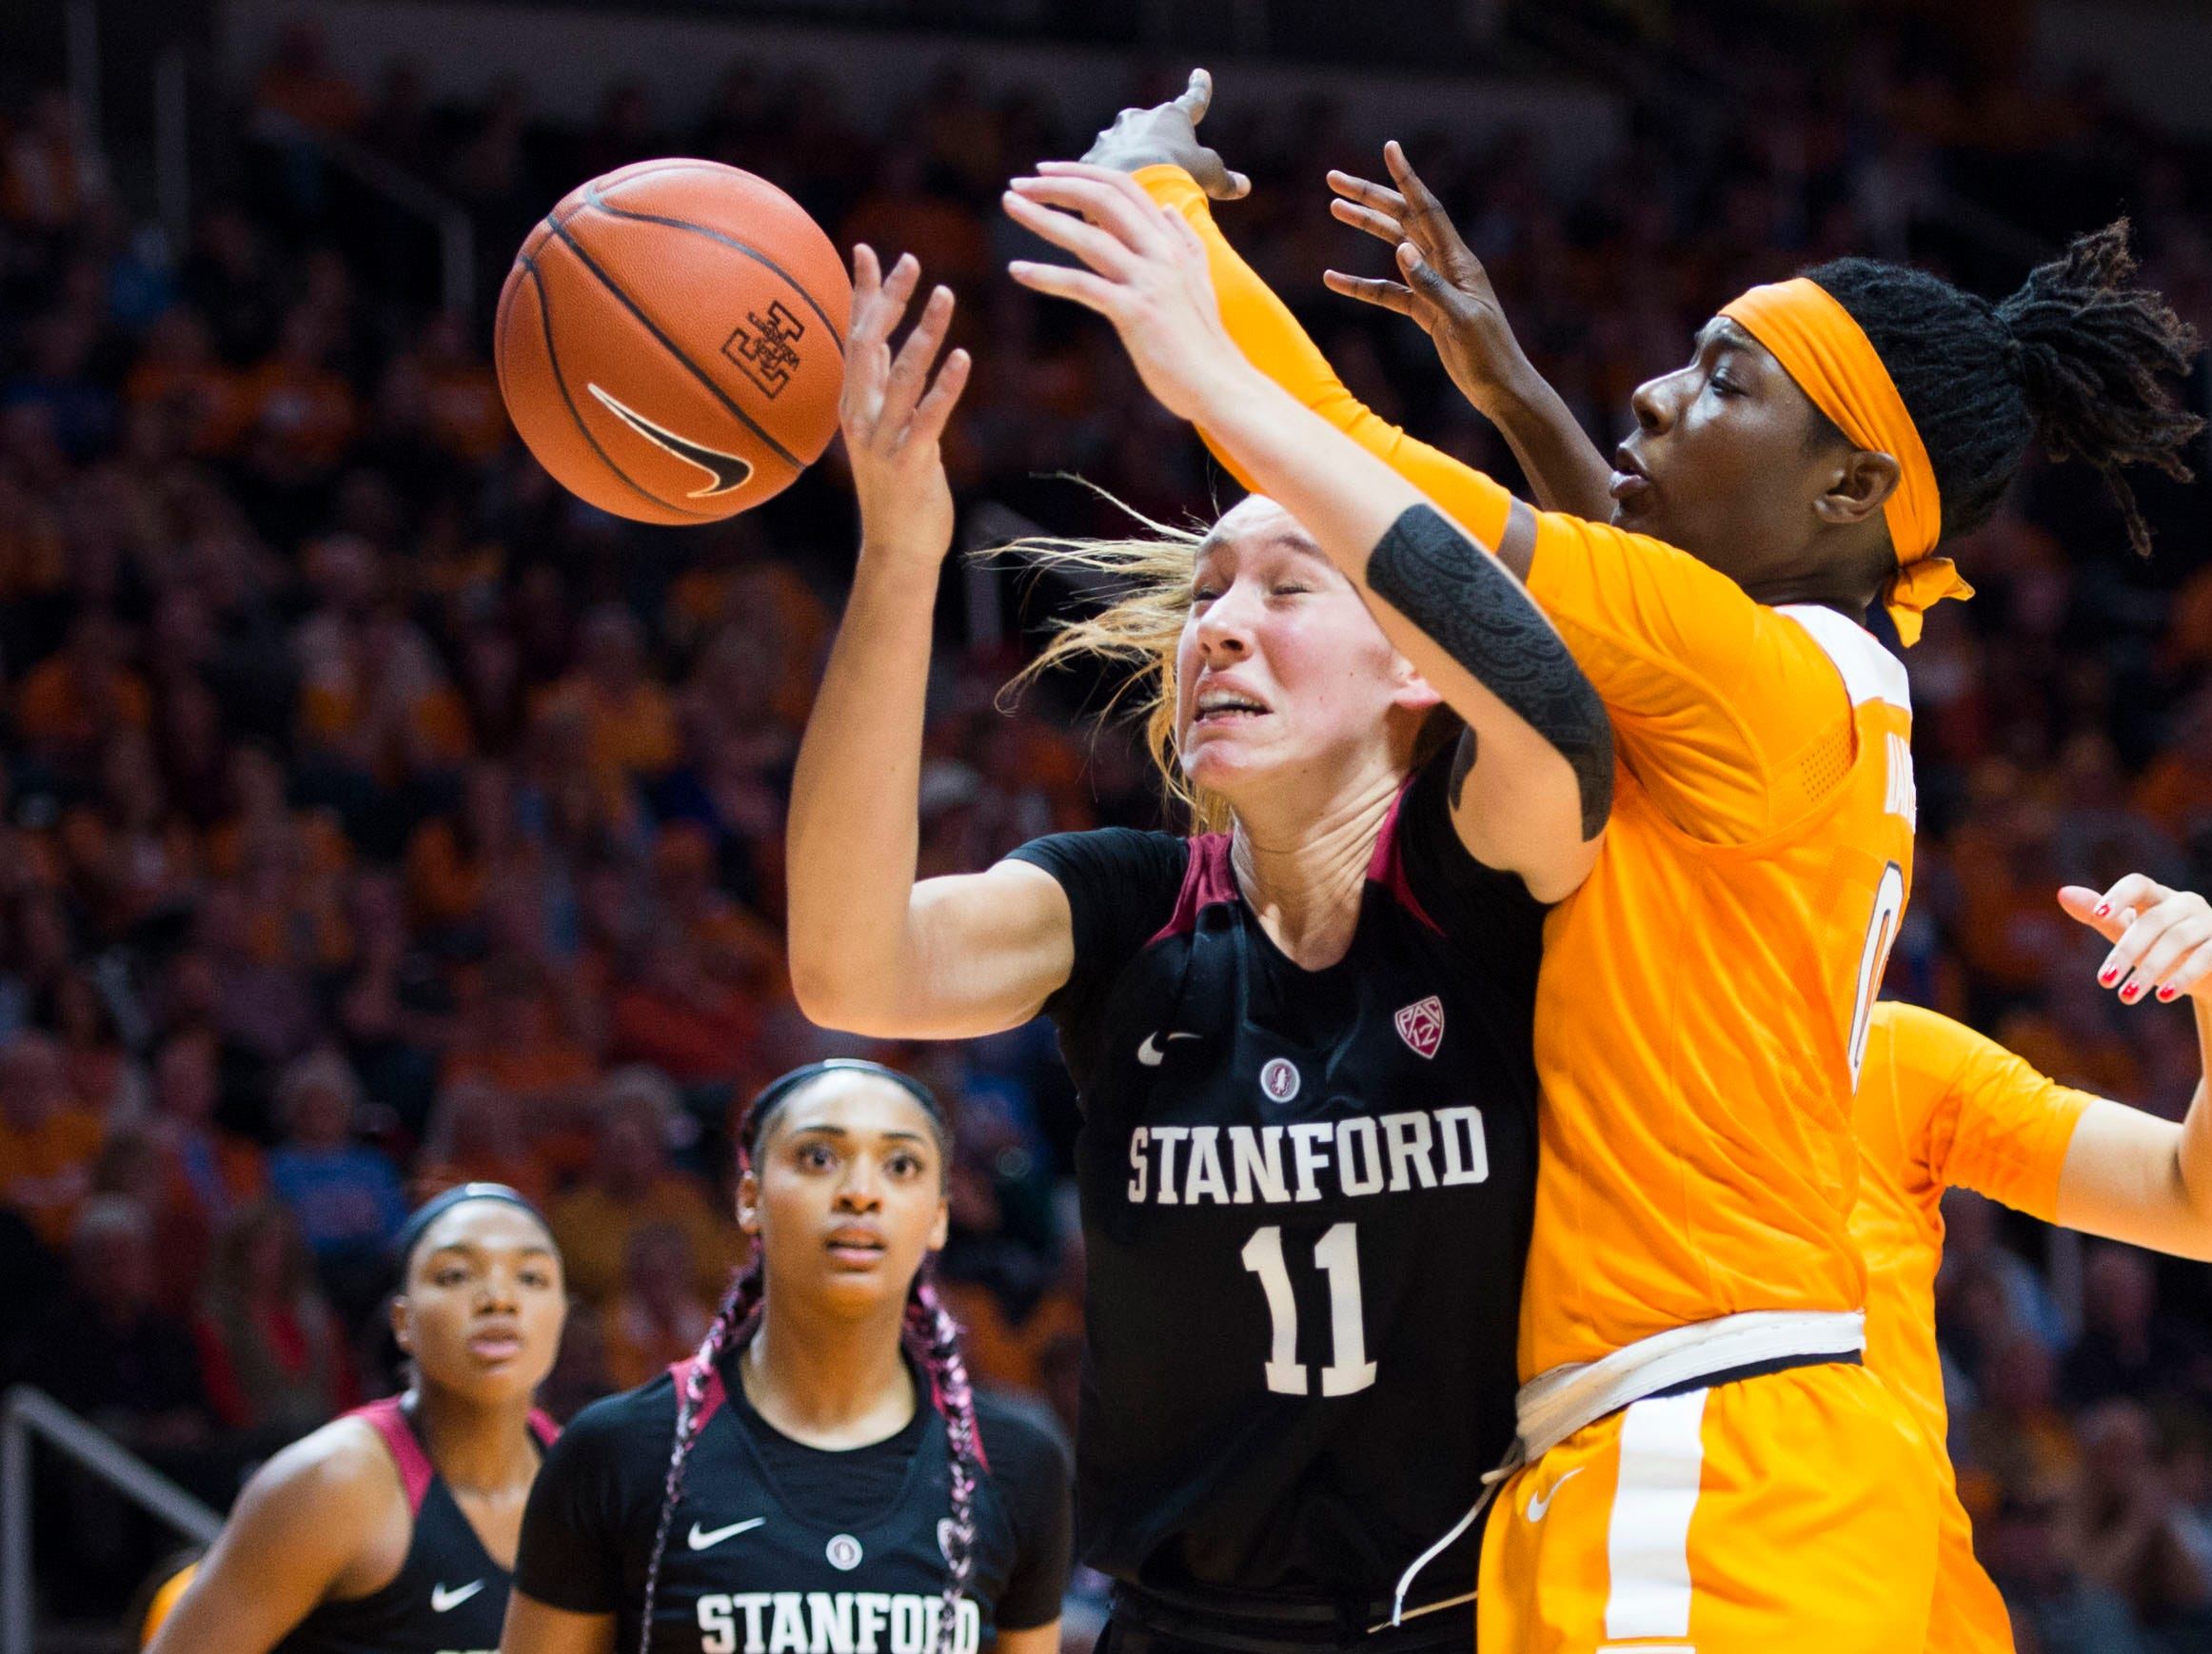 Standford's Alanna Smith (11) defends Tennessee's Rennia Davis (0) during a women's basketball game between Tennessee and Stanford at Thompson-Boling Arena Tuesday, Dec. 18, 2018.